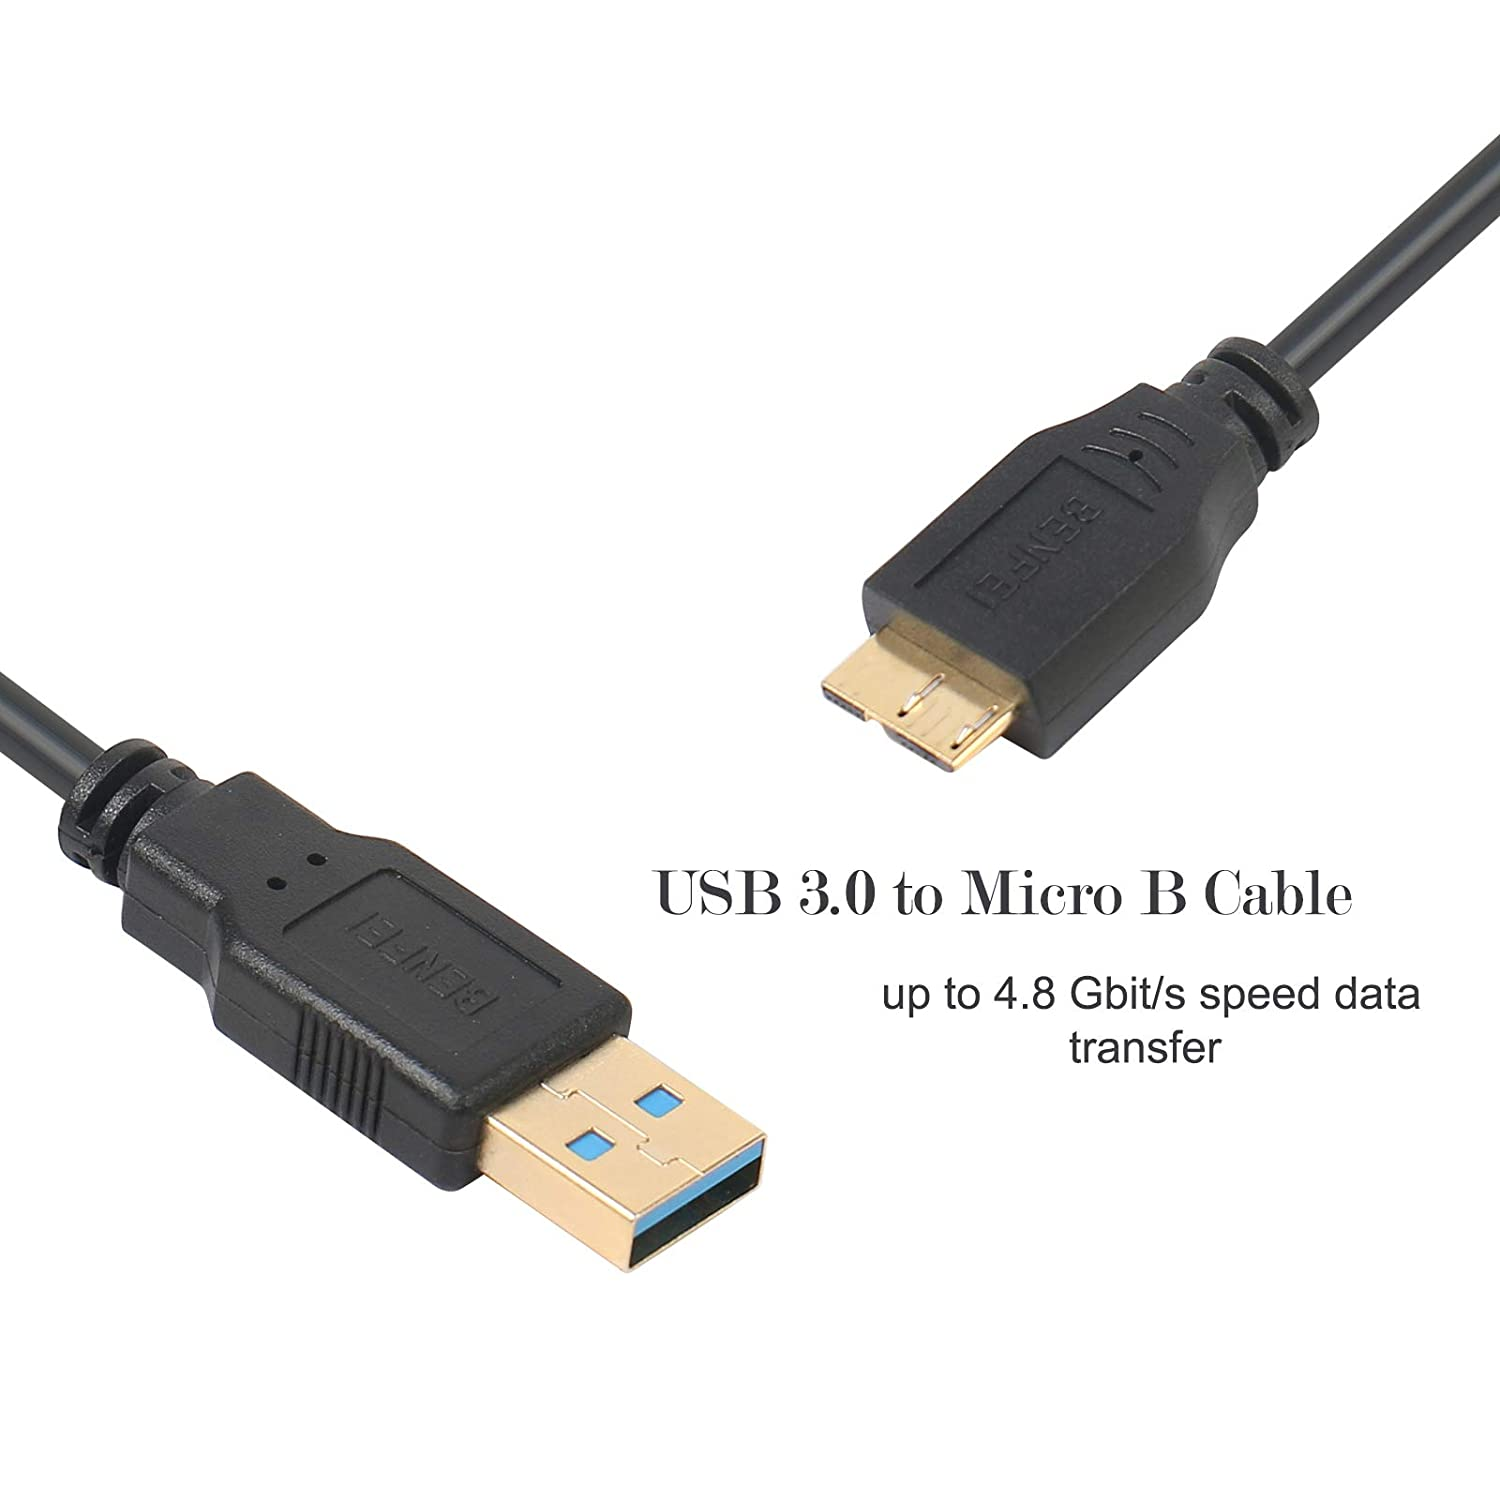 USB 3.0 Micro Cable Note 3//N9000 000212black-2p Charging Samsung Galaxy S5 HD Camera Benfei 2 Pack USB 3.0 A to Micro B Cable Male to Male 2.5 Feet Compatible External Hard Drive